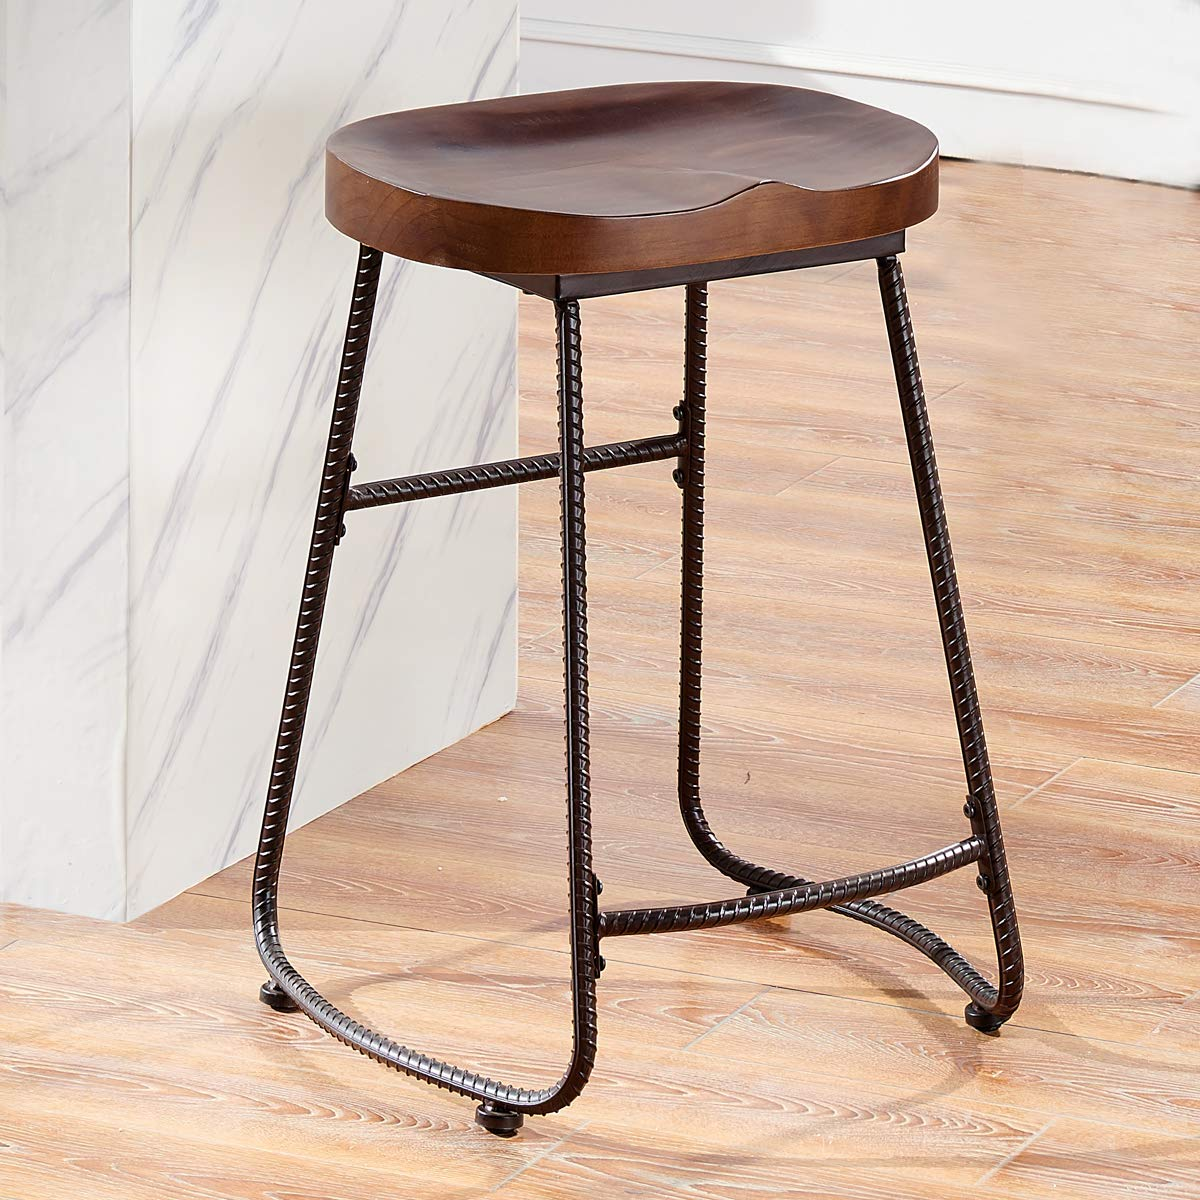 Ok furniture contoured saddle seat 24 inch backless bar stool chair for home kitchen island or counter wooden barstool with metal leg vintage walnut